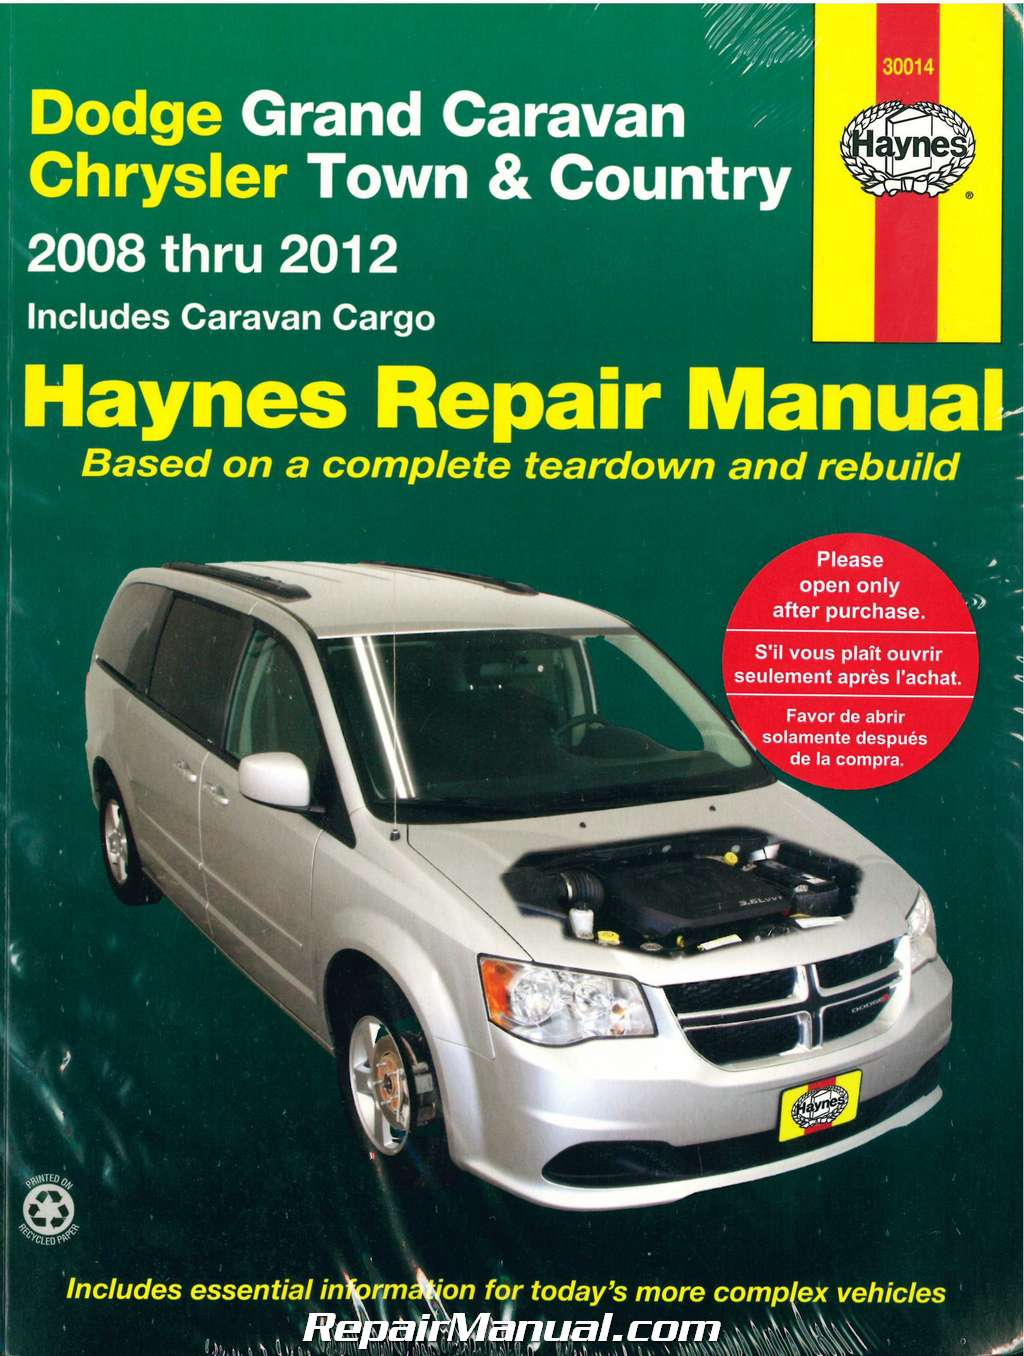 dodge grand caravan chrysler town country van 2008 2012 haynes car repair manual. Black Bedroom Furniture Sets. Home Design Ideas